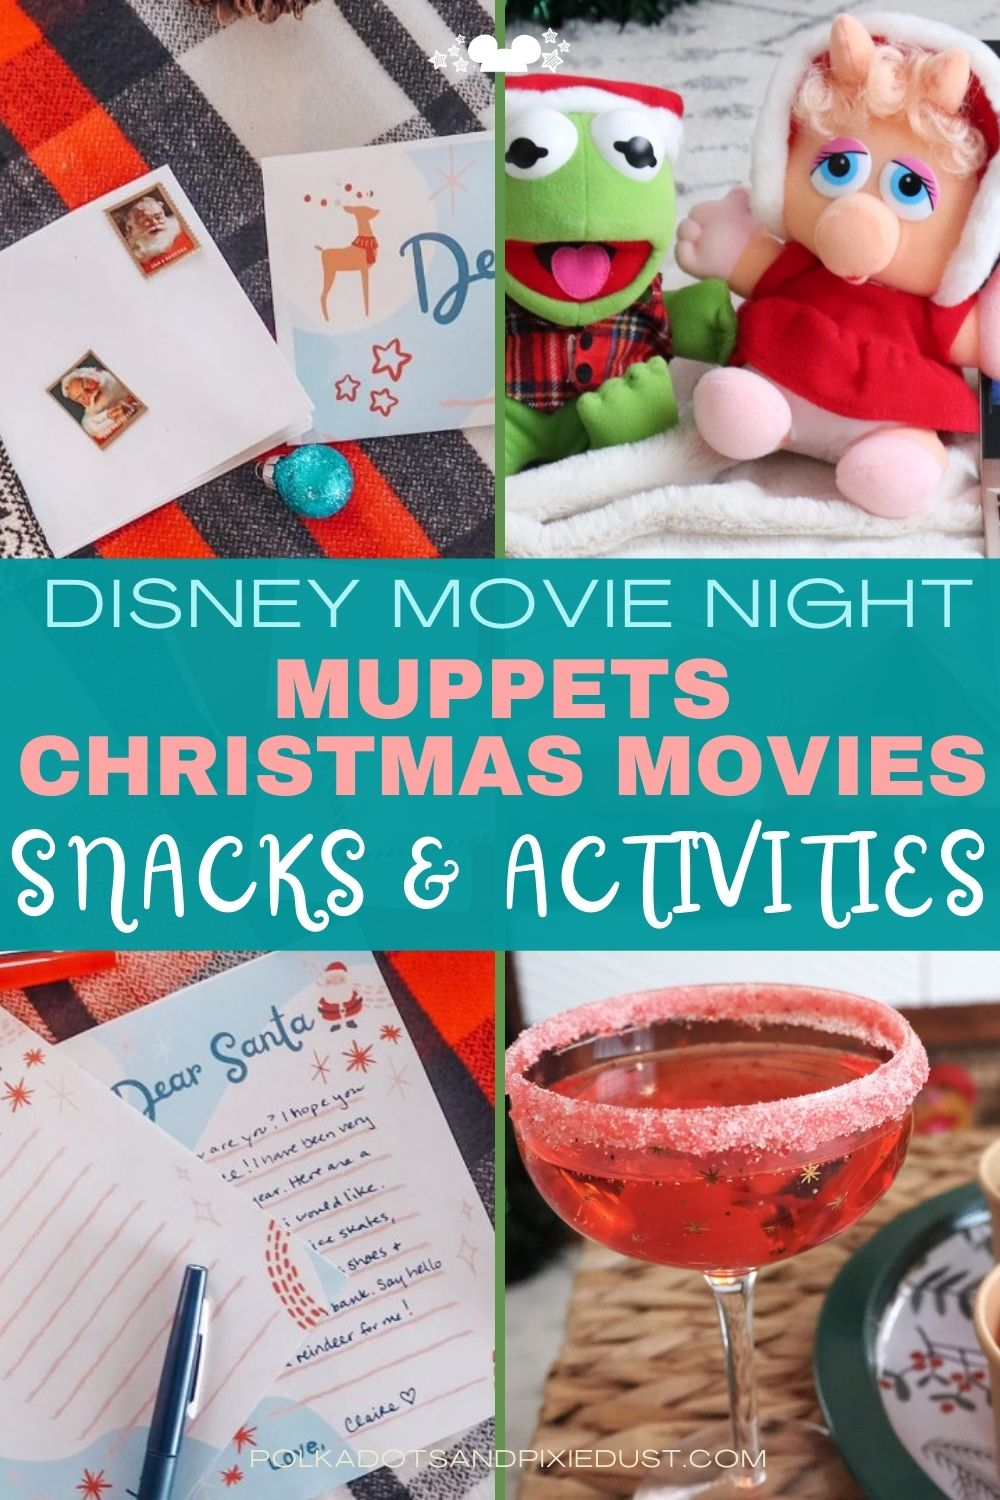 Muppets Christmas Movie Marathon Snacks and Activities for your Disney Christmas at home